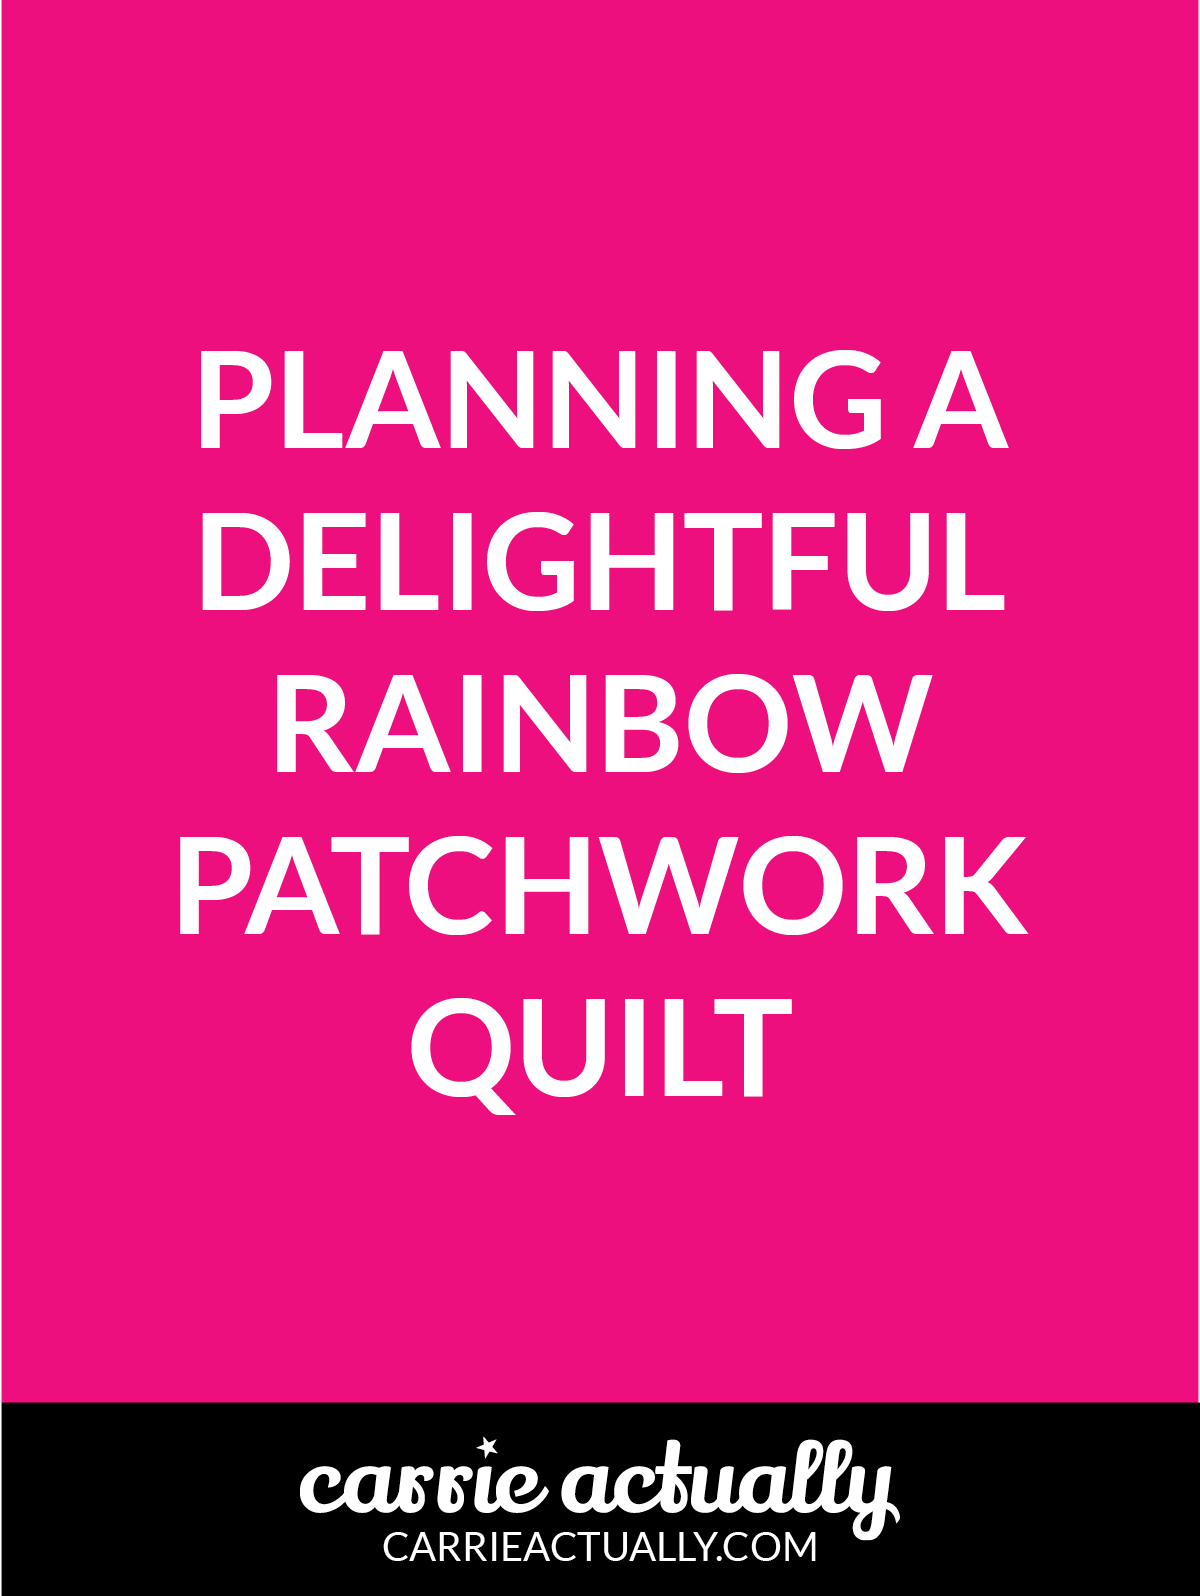 PLANNING A DELIGHTFUL RAINBOW PATCHWORK QUILT